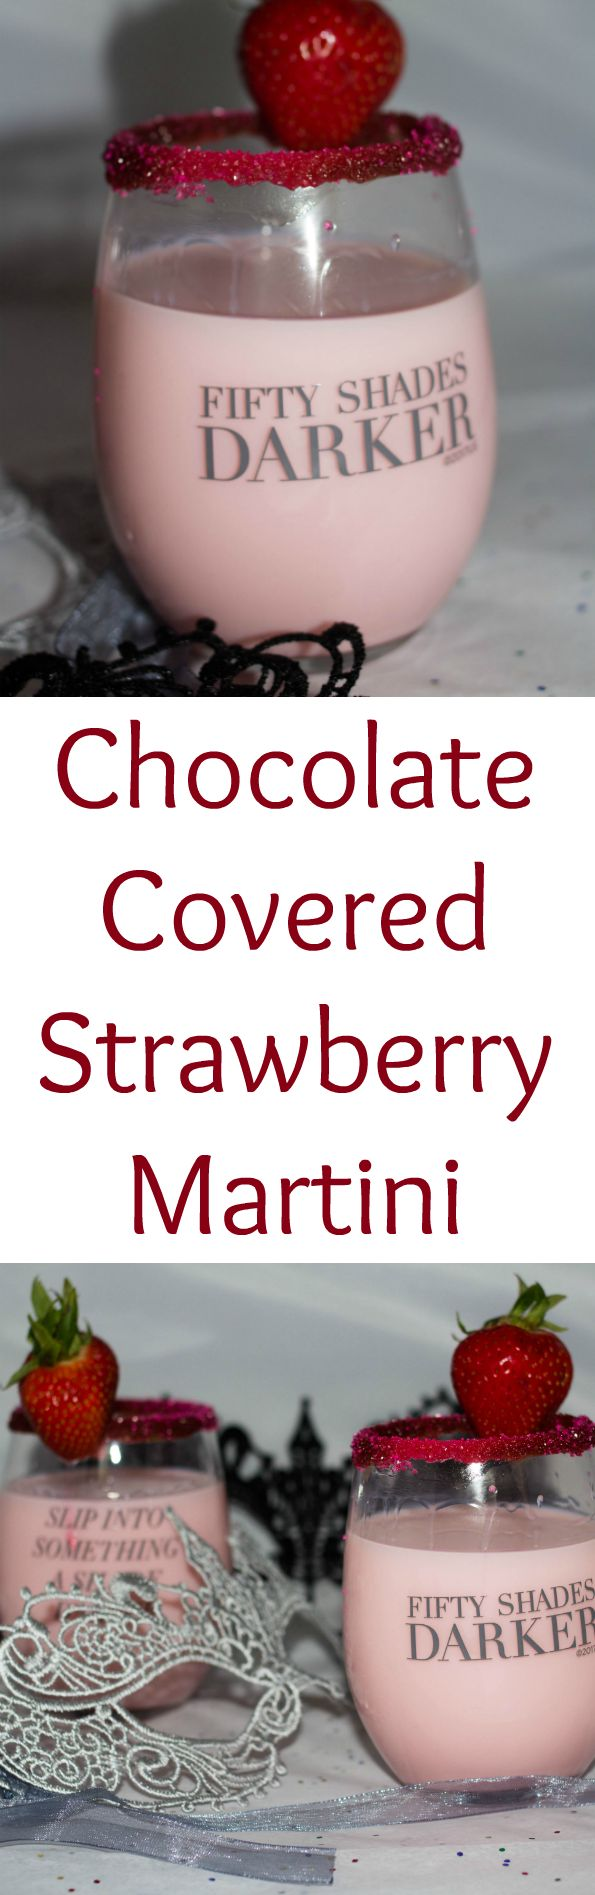 Indulge in a chocolate covered strawberry martini this weekend for a Girls Night In with #FiftyShadesDarker. #ad